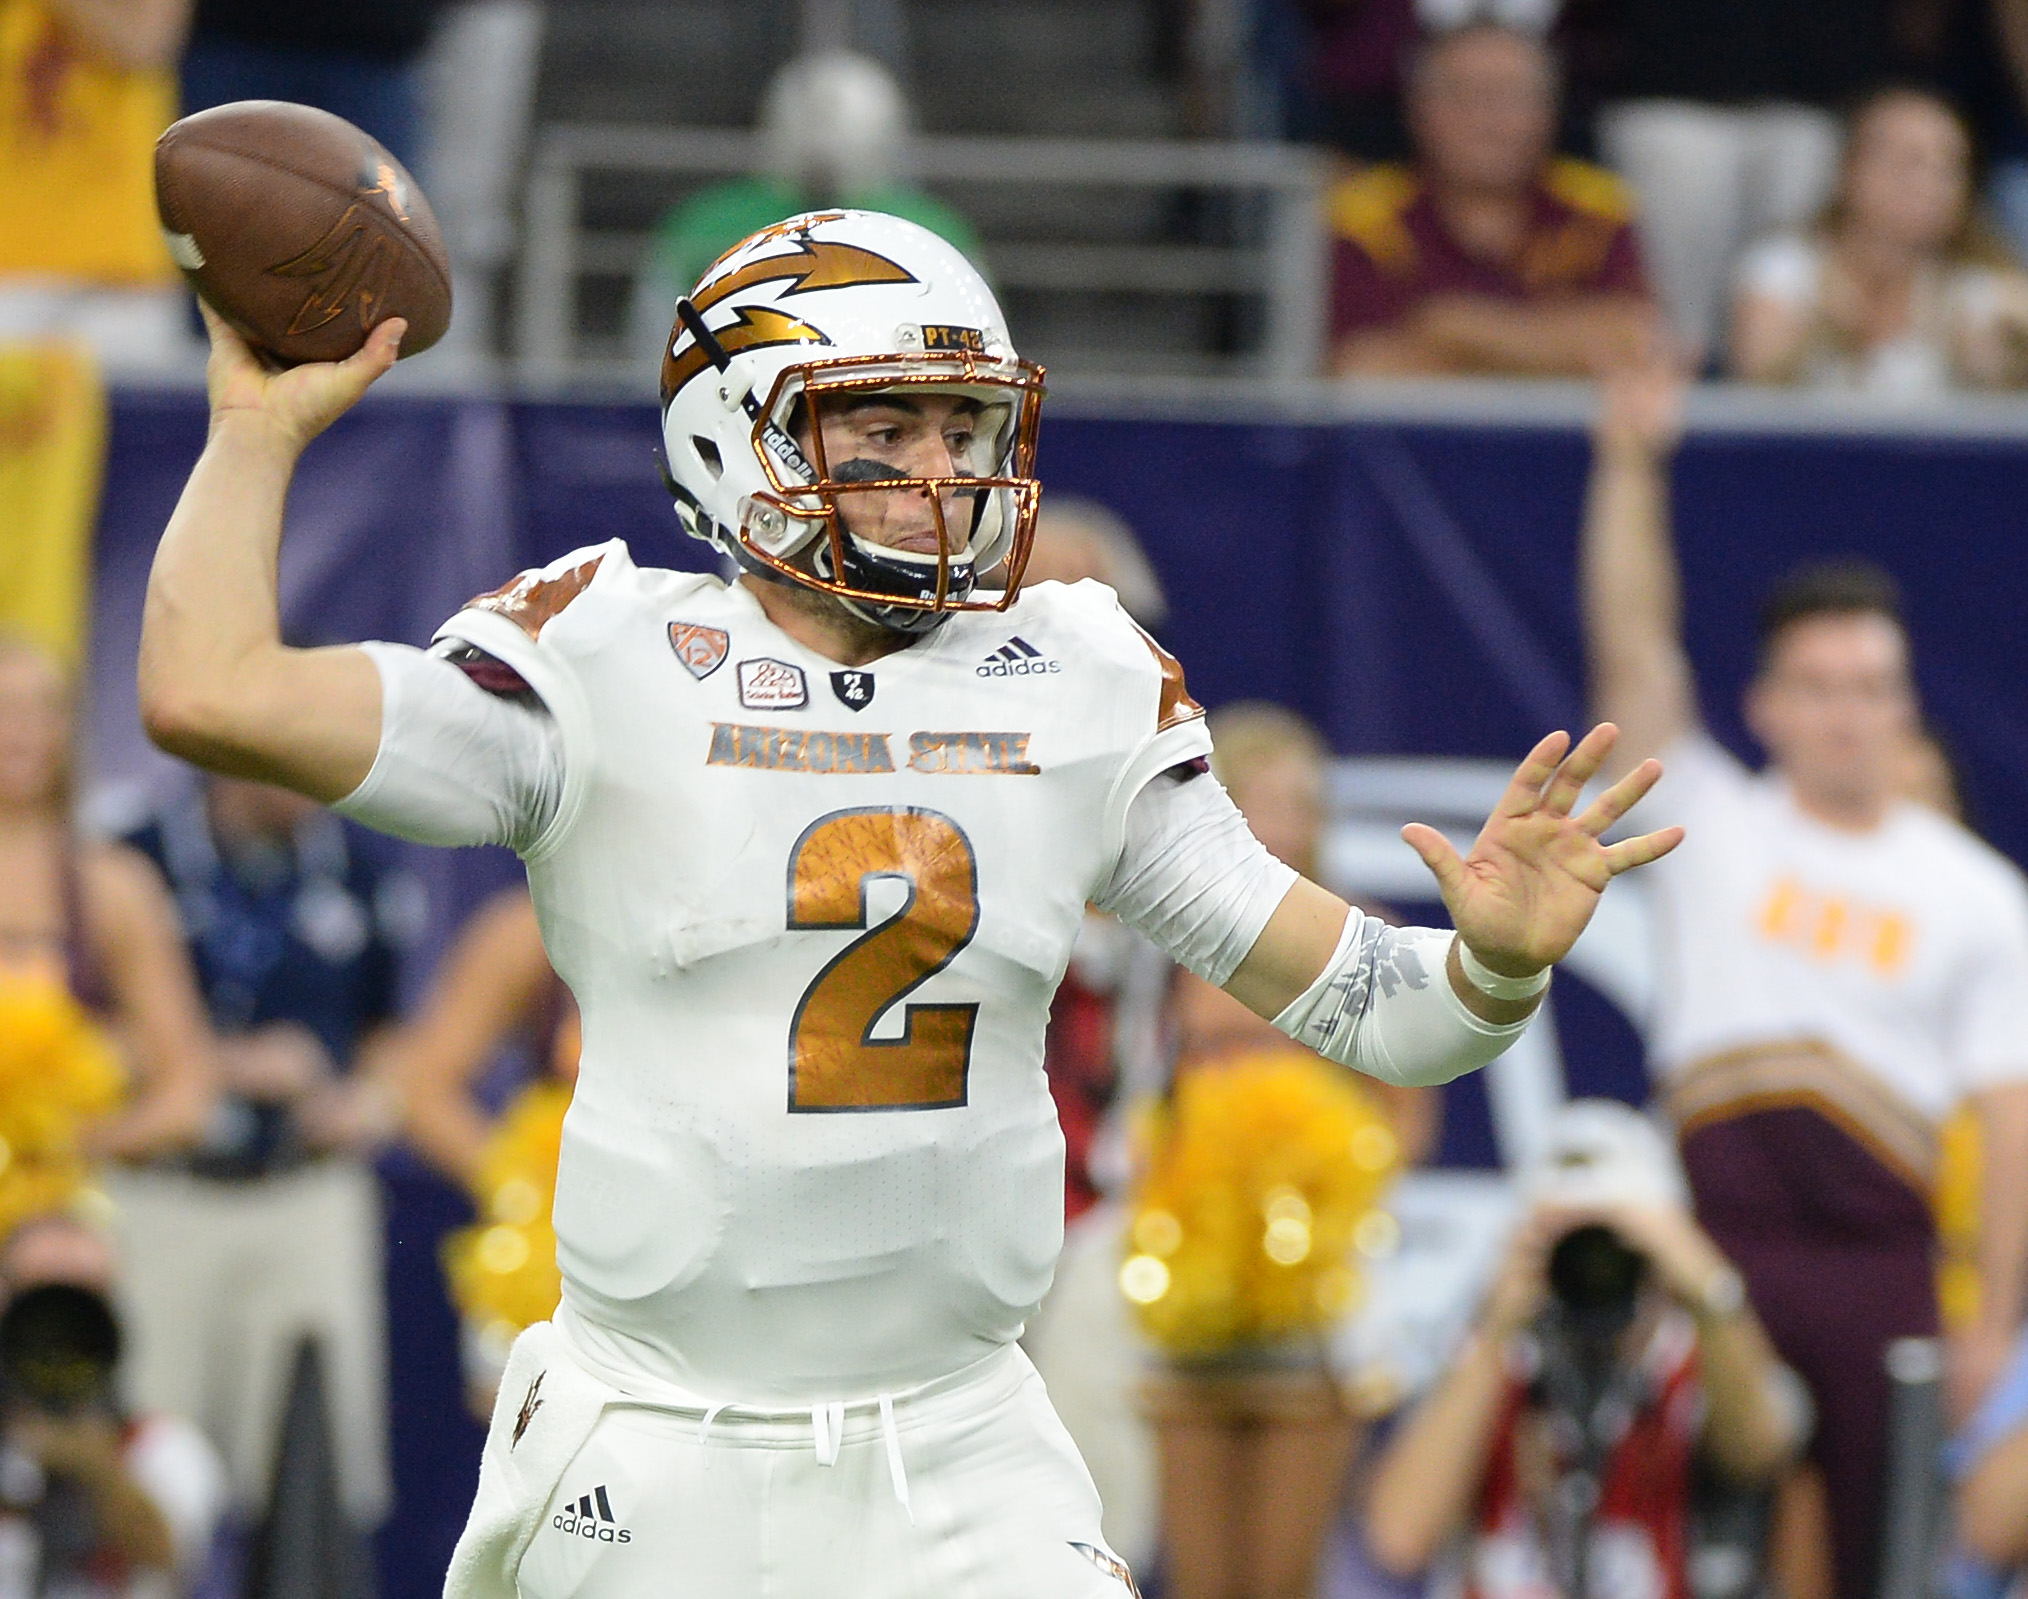 Arizona State quarterback Mike Bercovici (2) makes a pass against Texas A&M in the first half of an NCAA college football game on Saturday, Sept. 5, 2015, in Houston, Texas. (AP Photo/George Bridges)